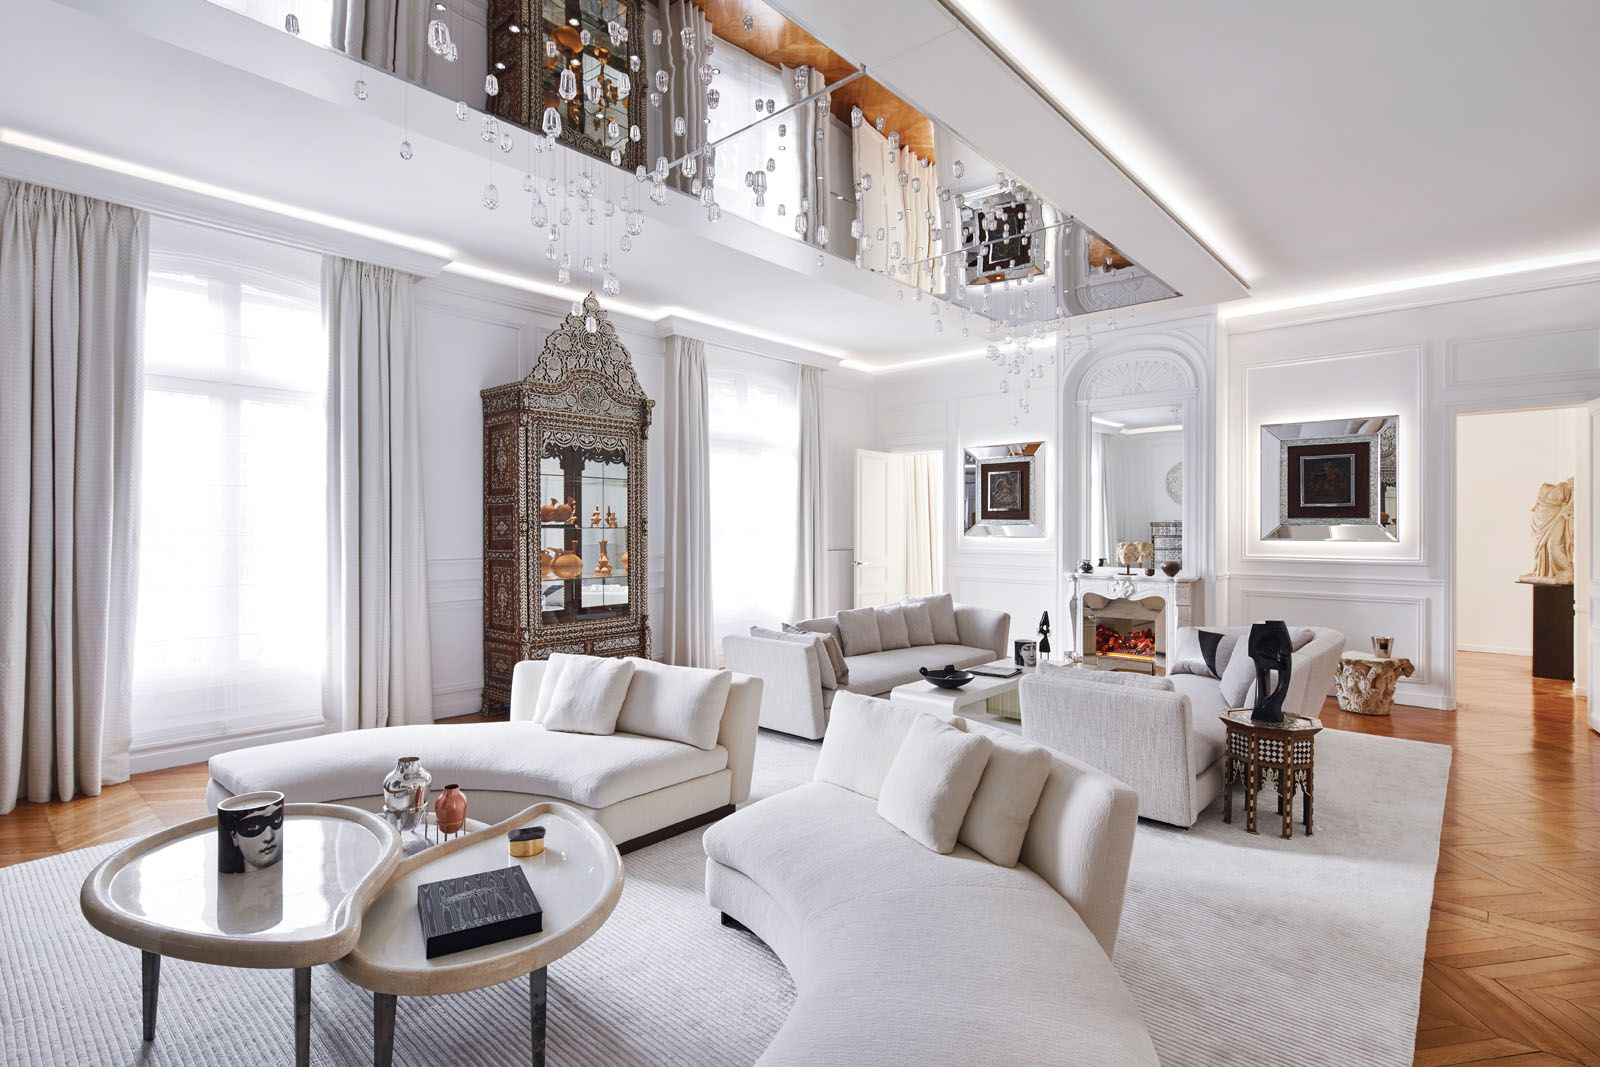 A light palette lets the art and antiques become the stars of the living area